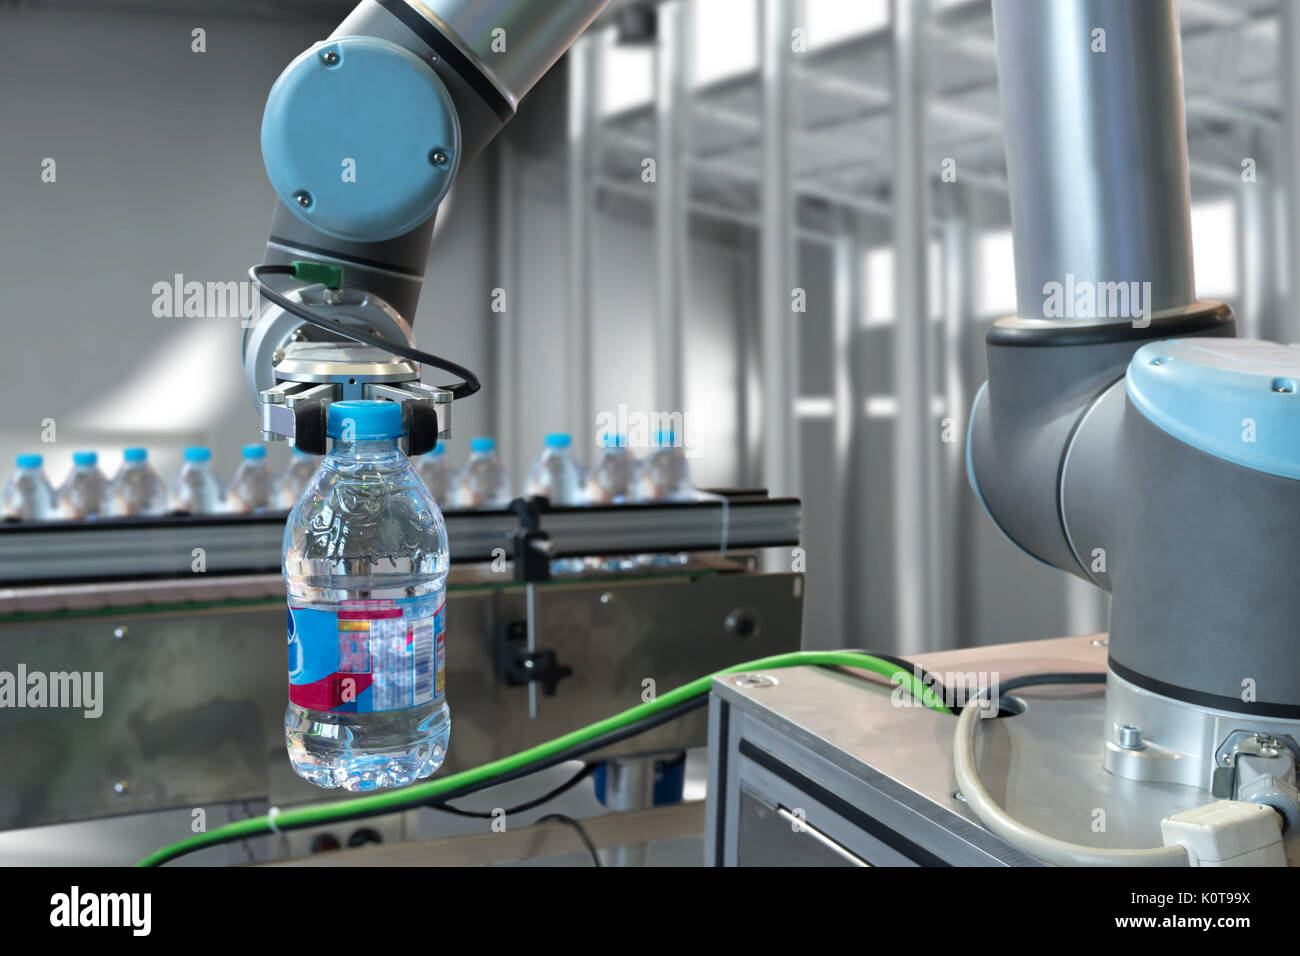 1afaada30f Automatic manufacturing production machine , robot gripper warehouse  picking holding water bottle in smart factory.